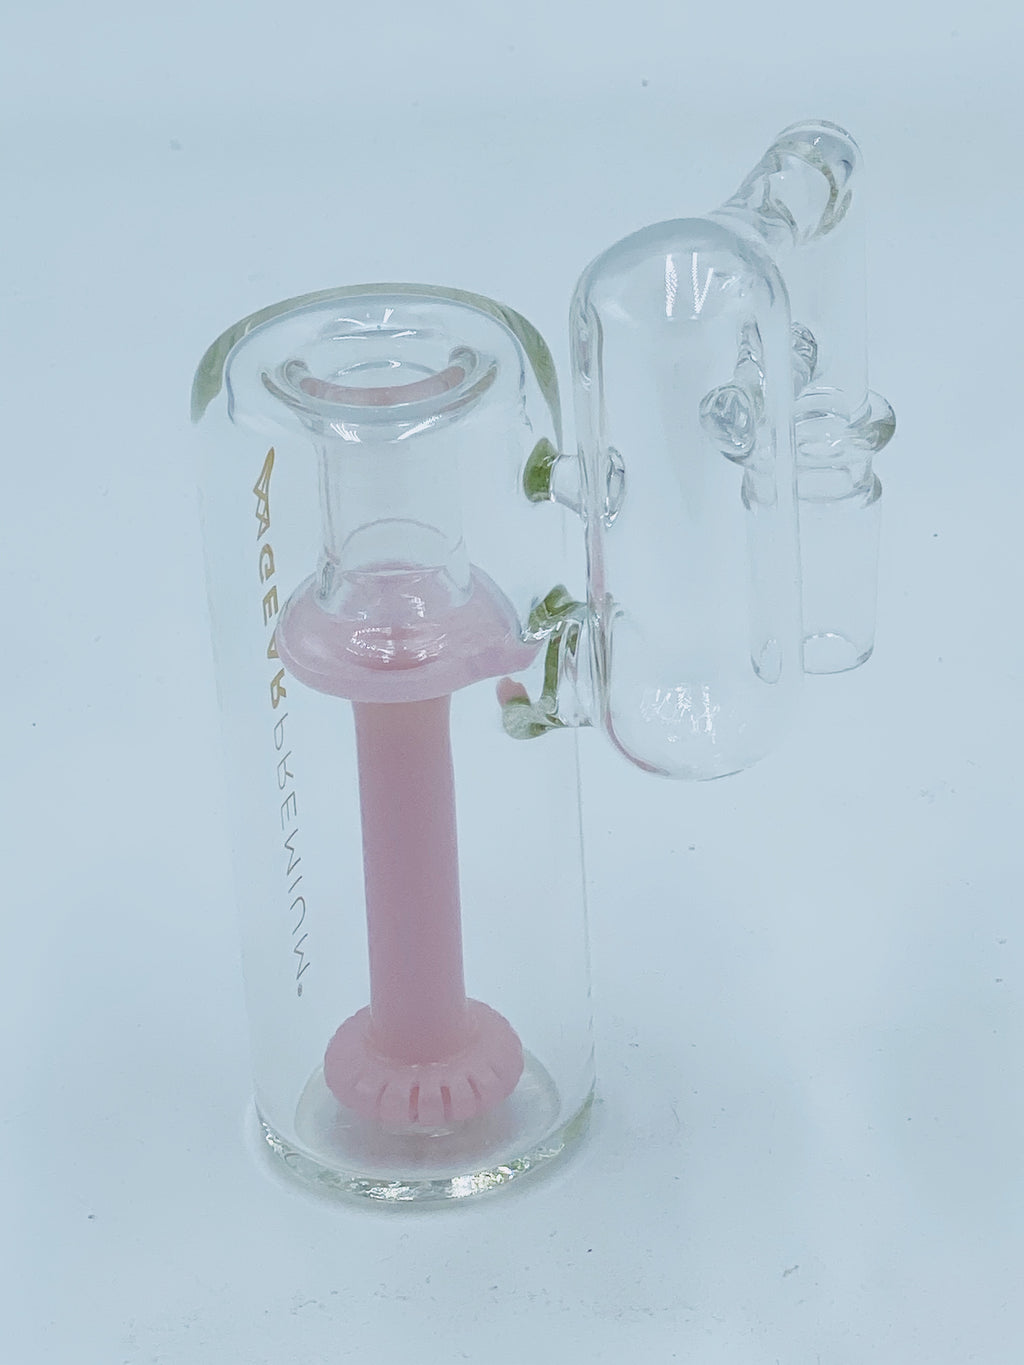 GEAR PREMIUM 14MM 90 DEGREE RECYCLER ASH CATCHER - Smoke Country - Land of the artistic glass blown bongs